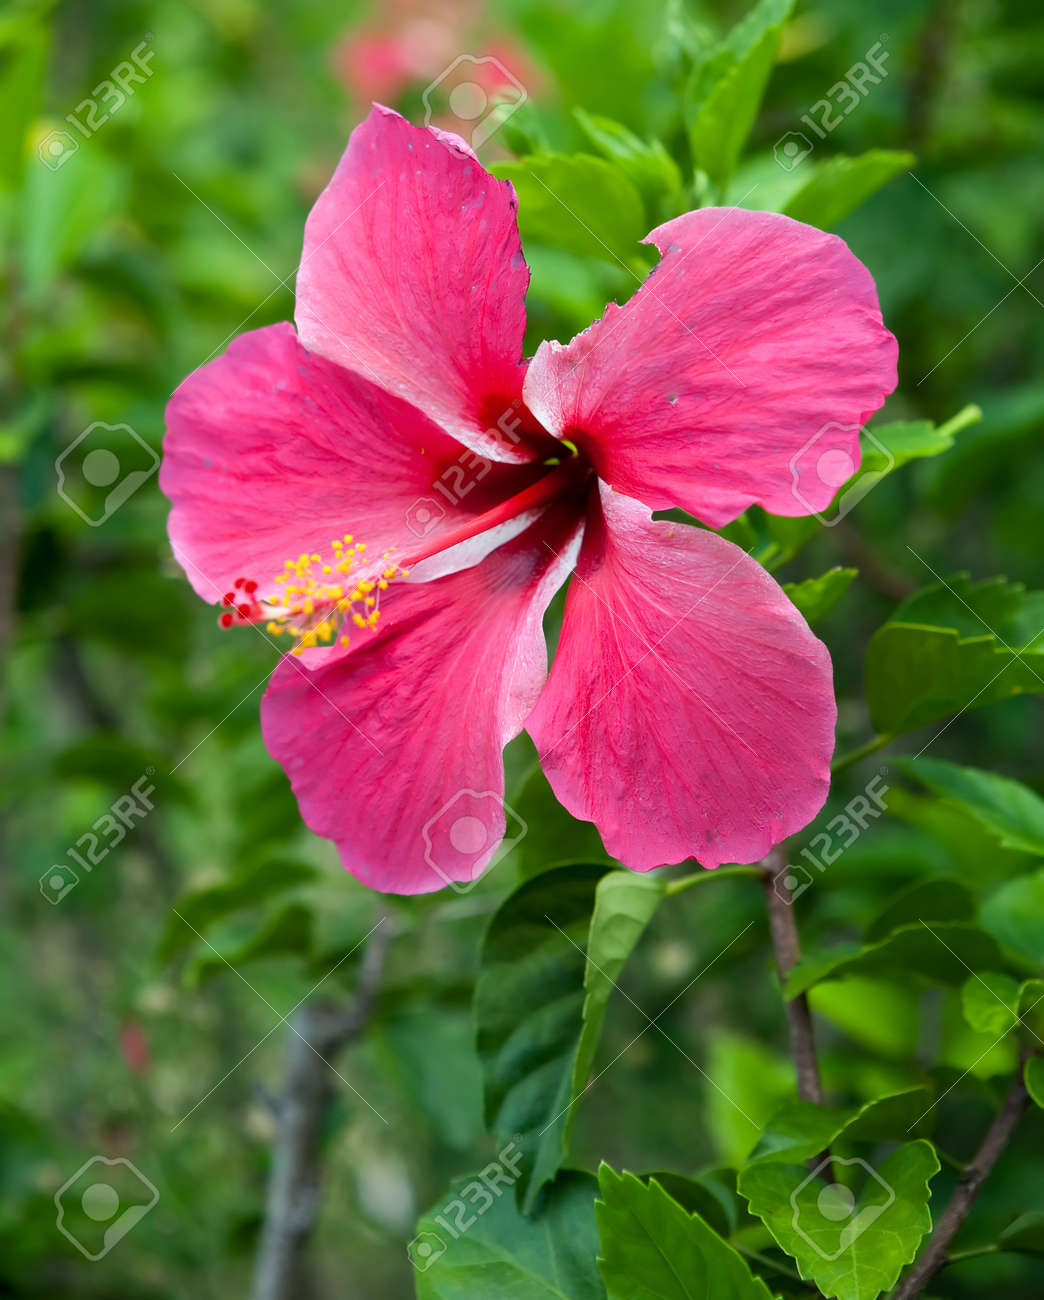 Interesting red hibiscus flowers with whisker like extensions interesting red hibiscus flowers with whisker like extensions and balls as part of the plant izmirmasajfo Choice Image